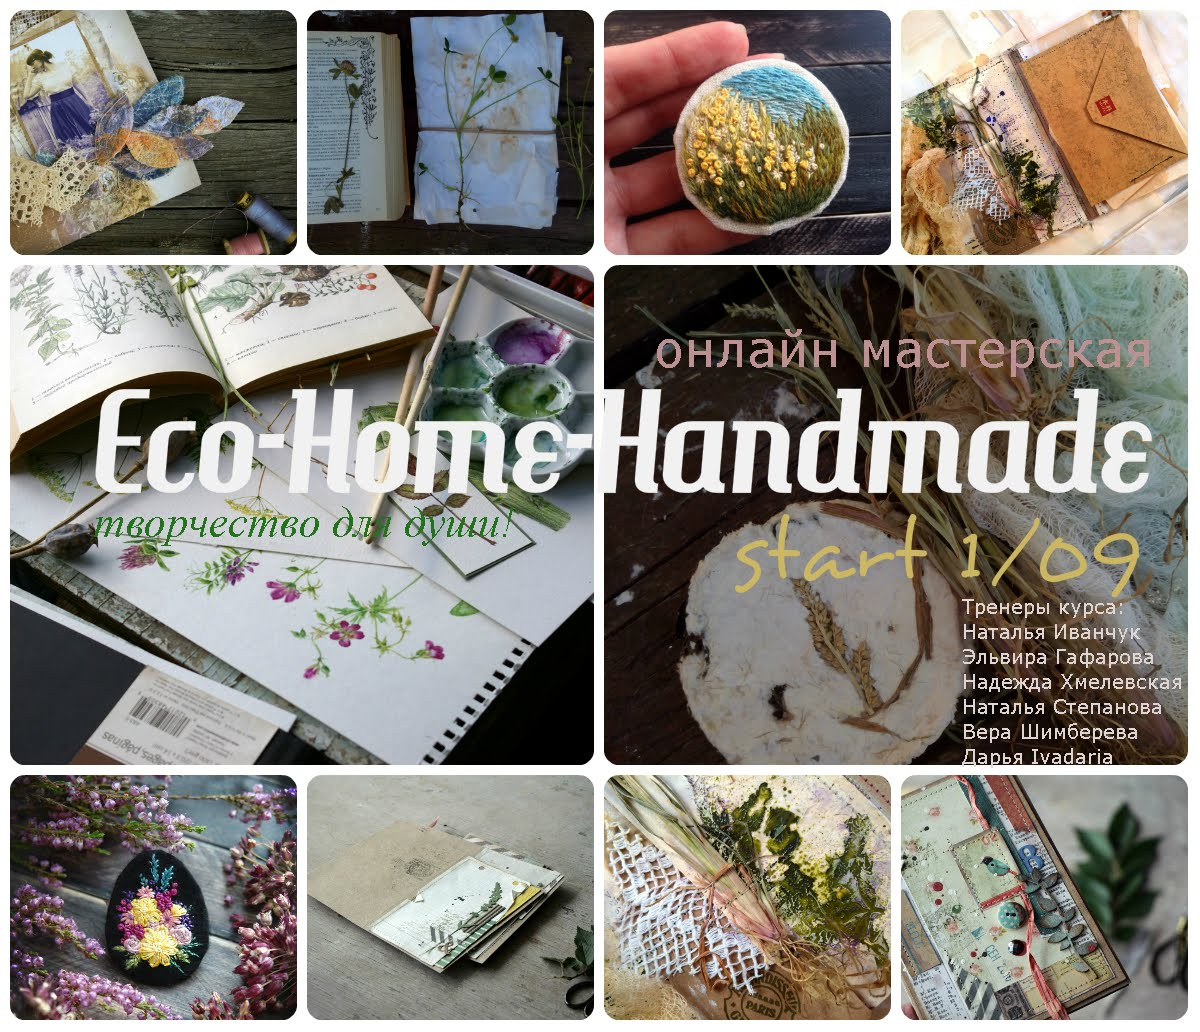 I am learning at Eco-Home Handmade